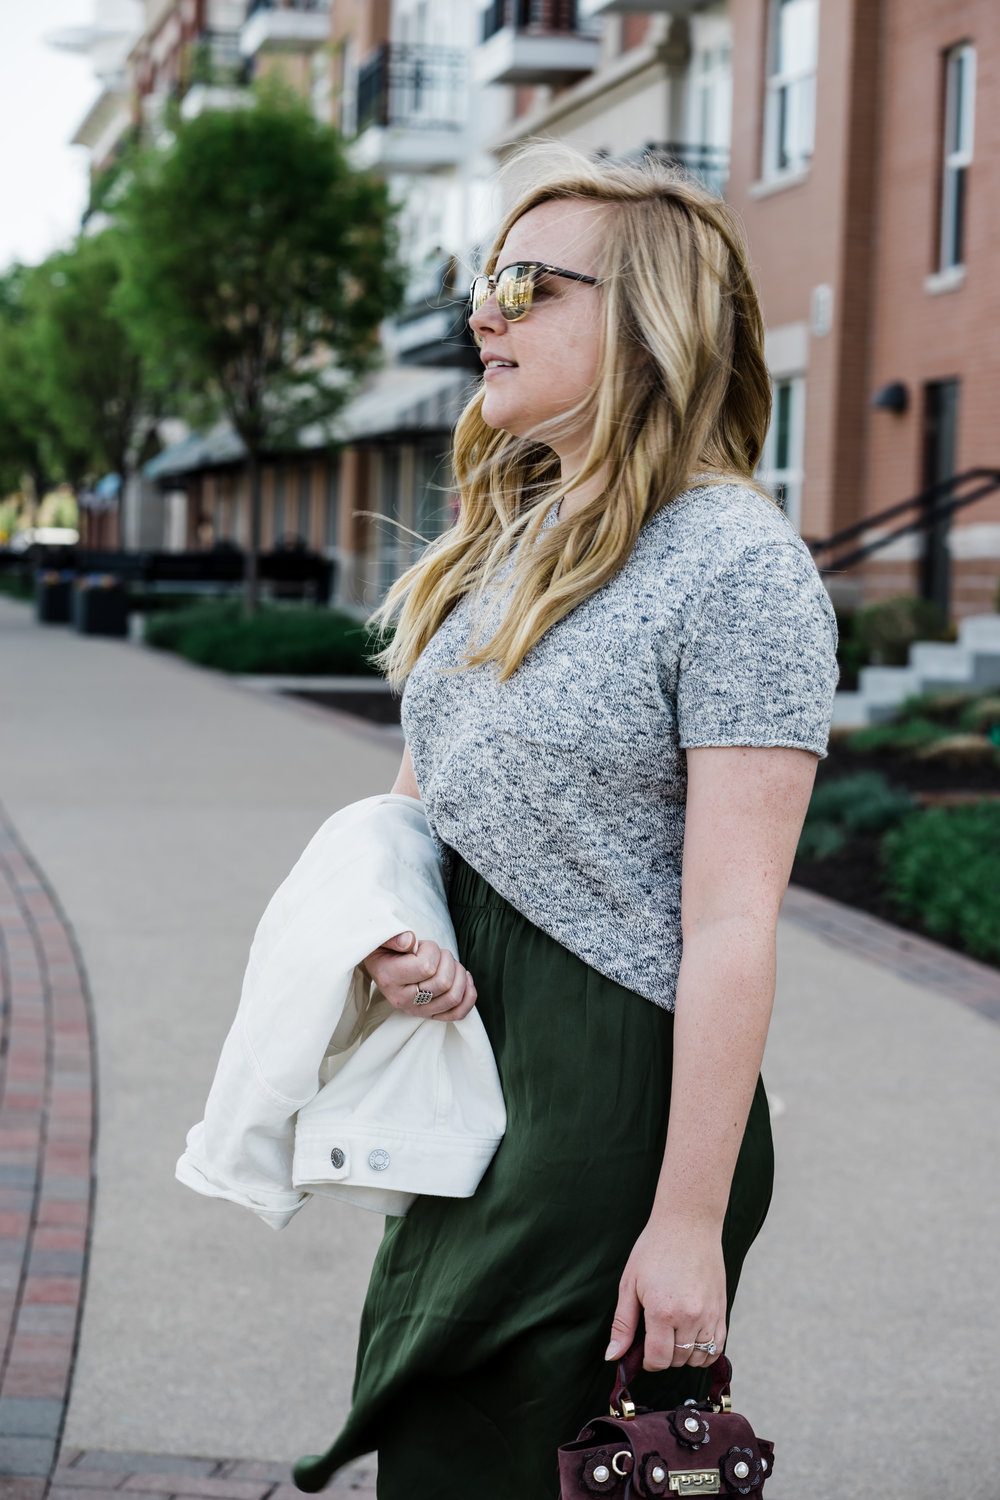 Maggie a la Mode - Everlane The Denim Jacket Review, Madewell Pocket Tee Sweater, Ann Taylor LOFT Fluid Pull on Skirt, ZAC Zac Posen Eartha Iconic Top Handle Mini Cordial Suede Crossbody Bag, Stuart Weitzman NearlyNude Sandals, Ray Ban Clubmaster Sunglasses